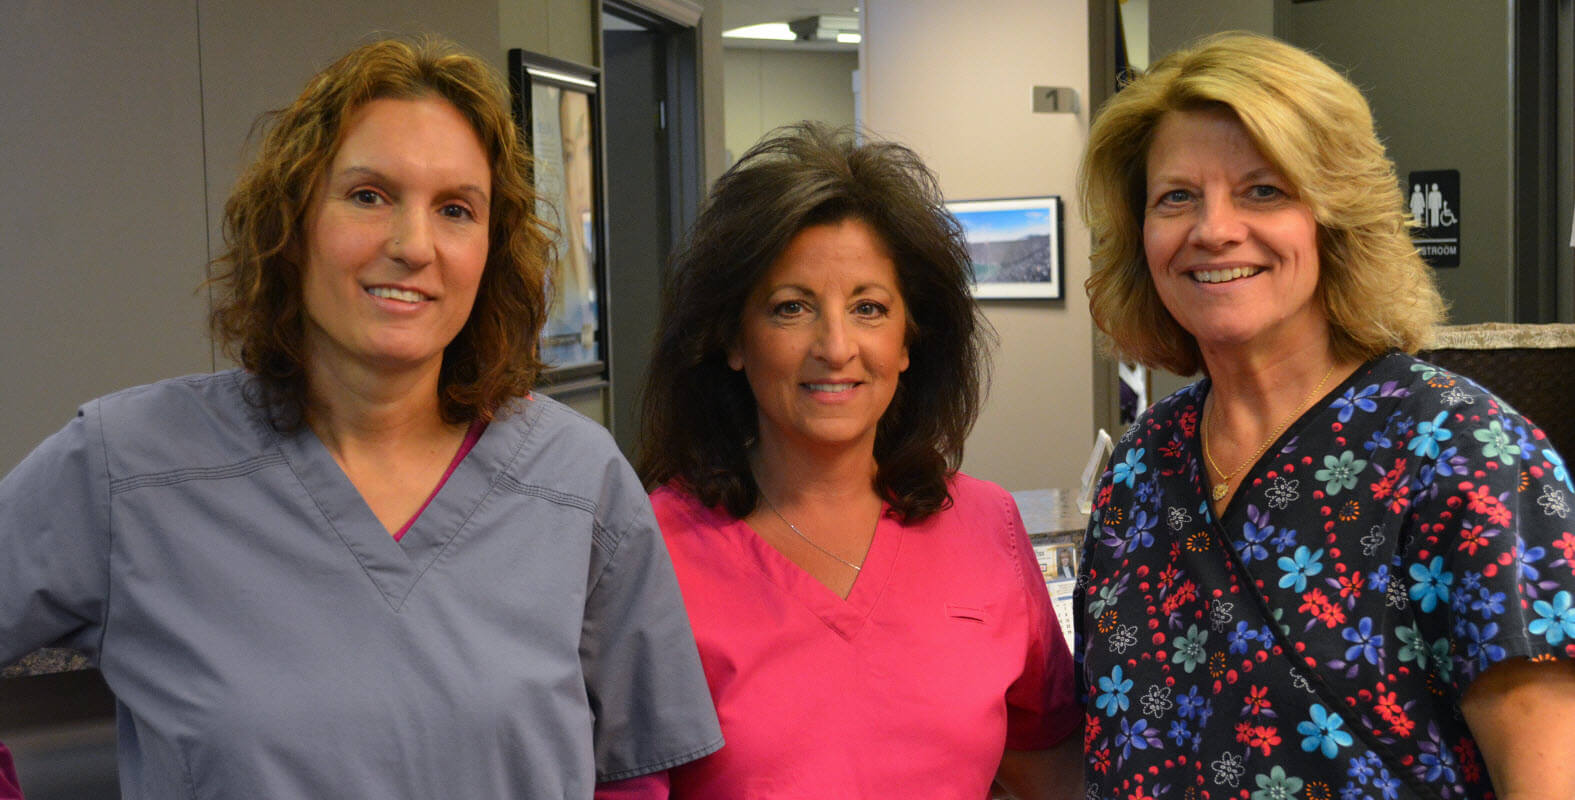 Three smiling women in scrubs